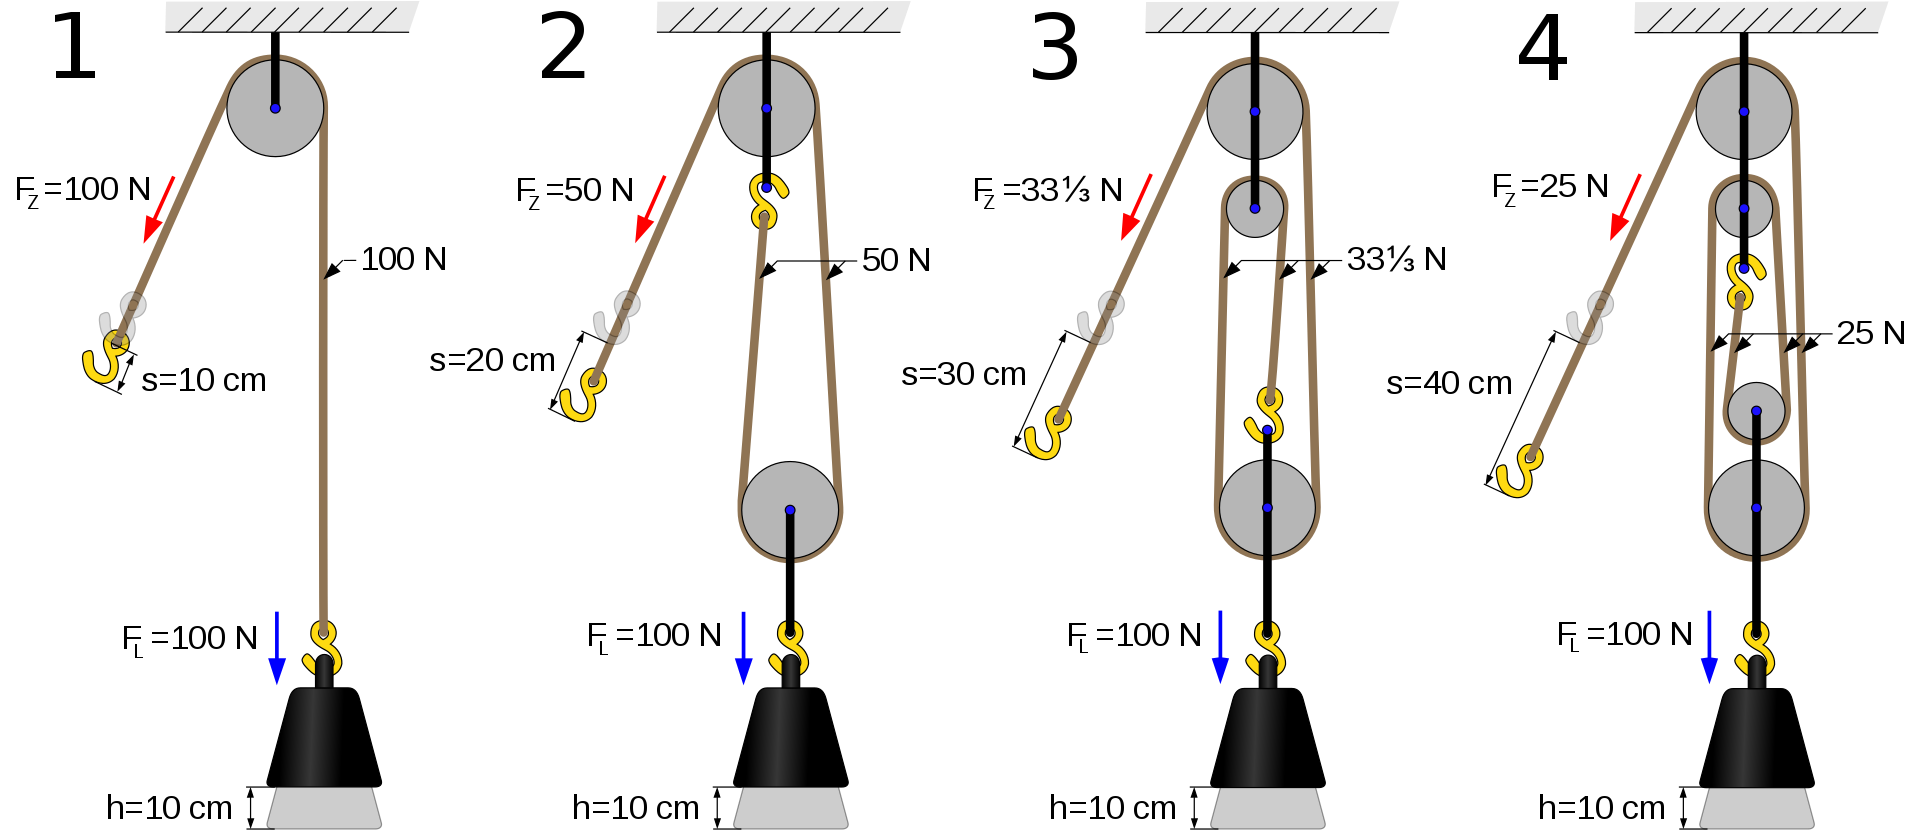 Examples Of Rope And Pulley Systems Illustrating Mechanical Advantage Mechanical Advantage Pulley Block And Tackle